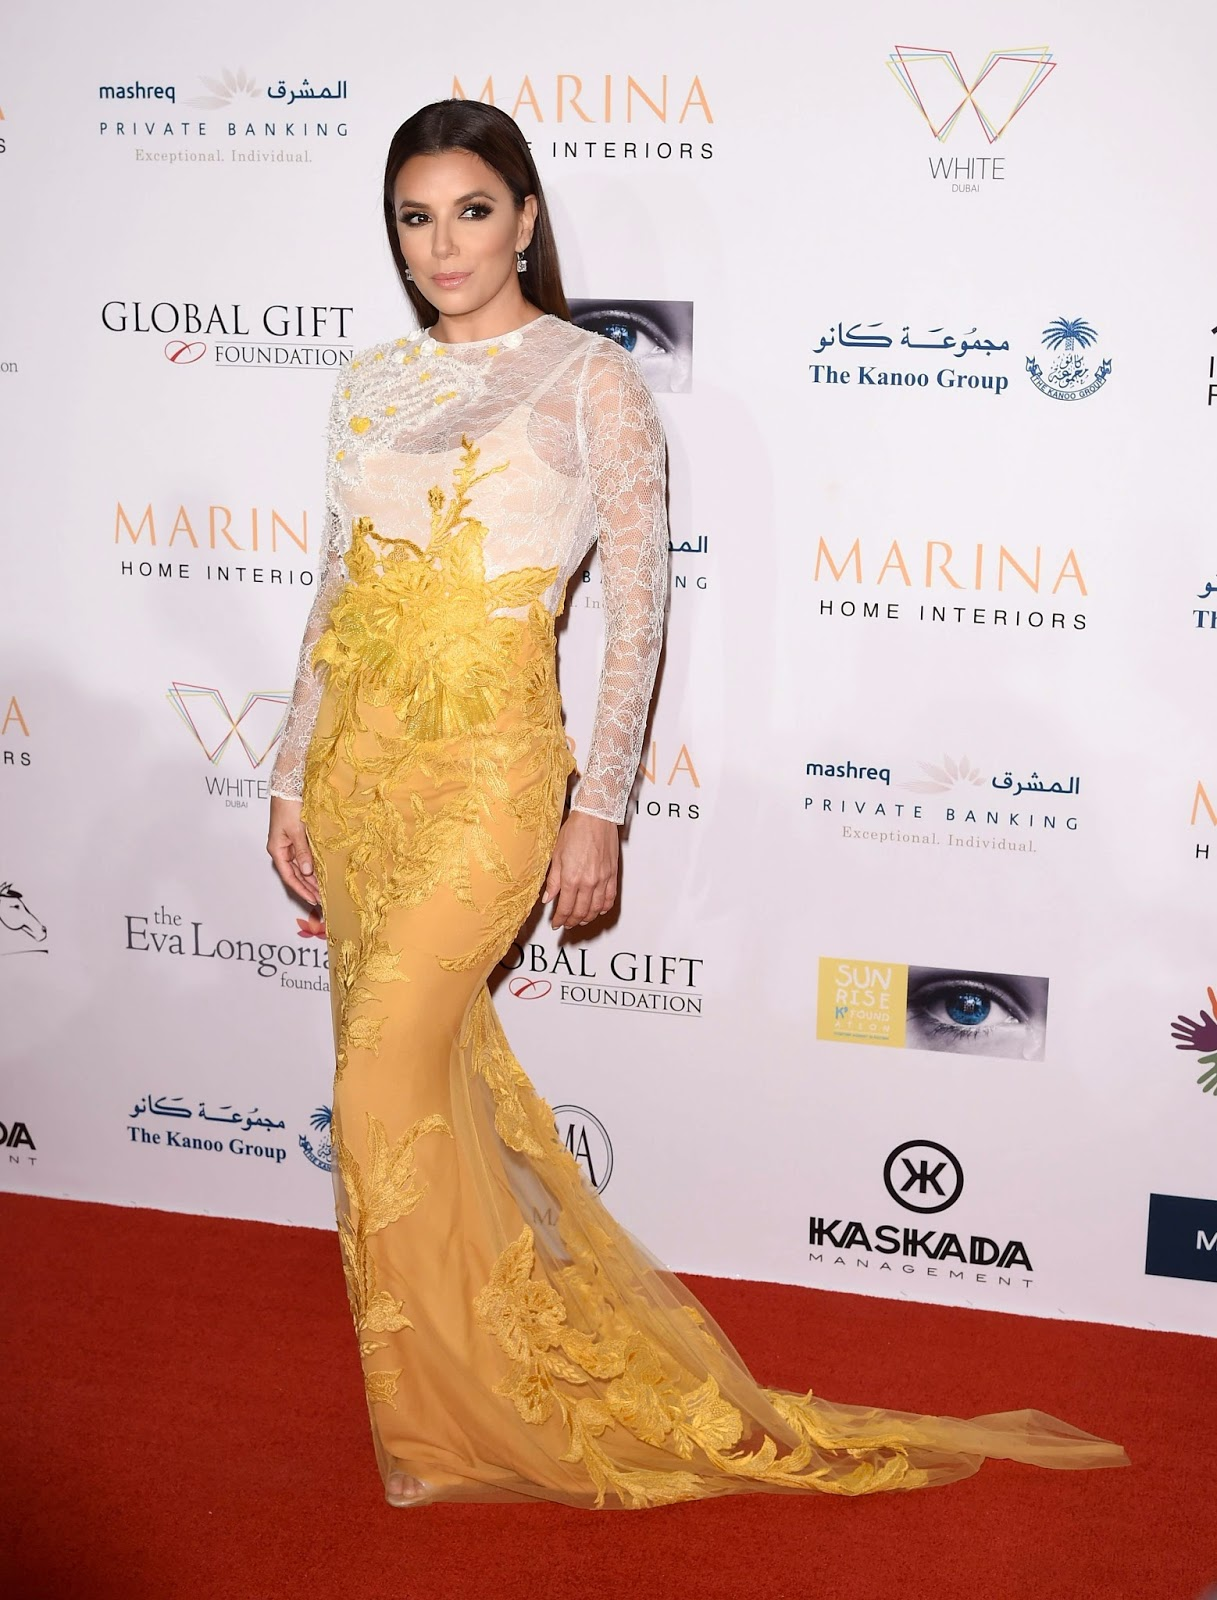 Eva Longoria in a lace gown at the 2014 Dubai International Film Festival